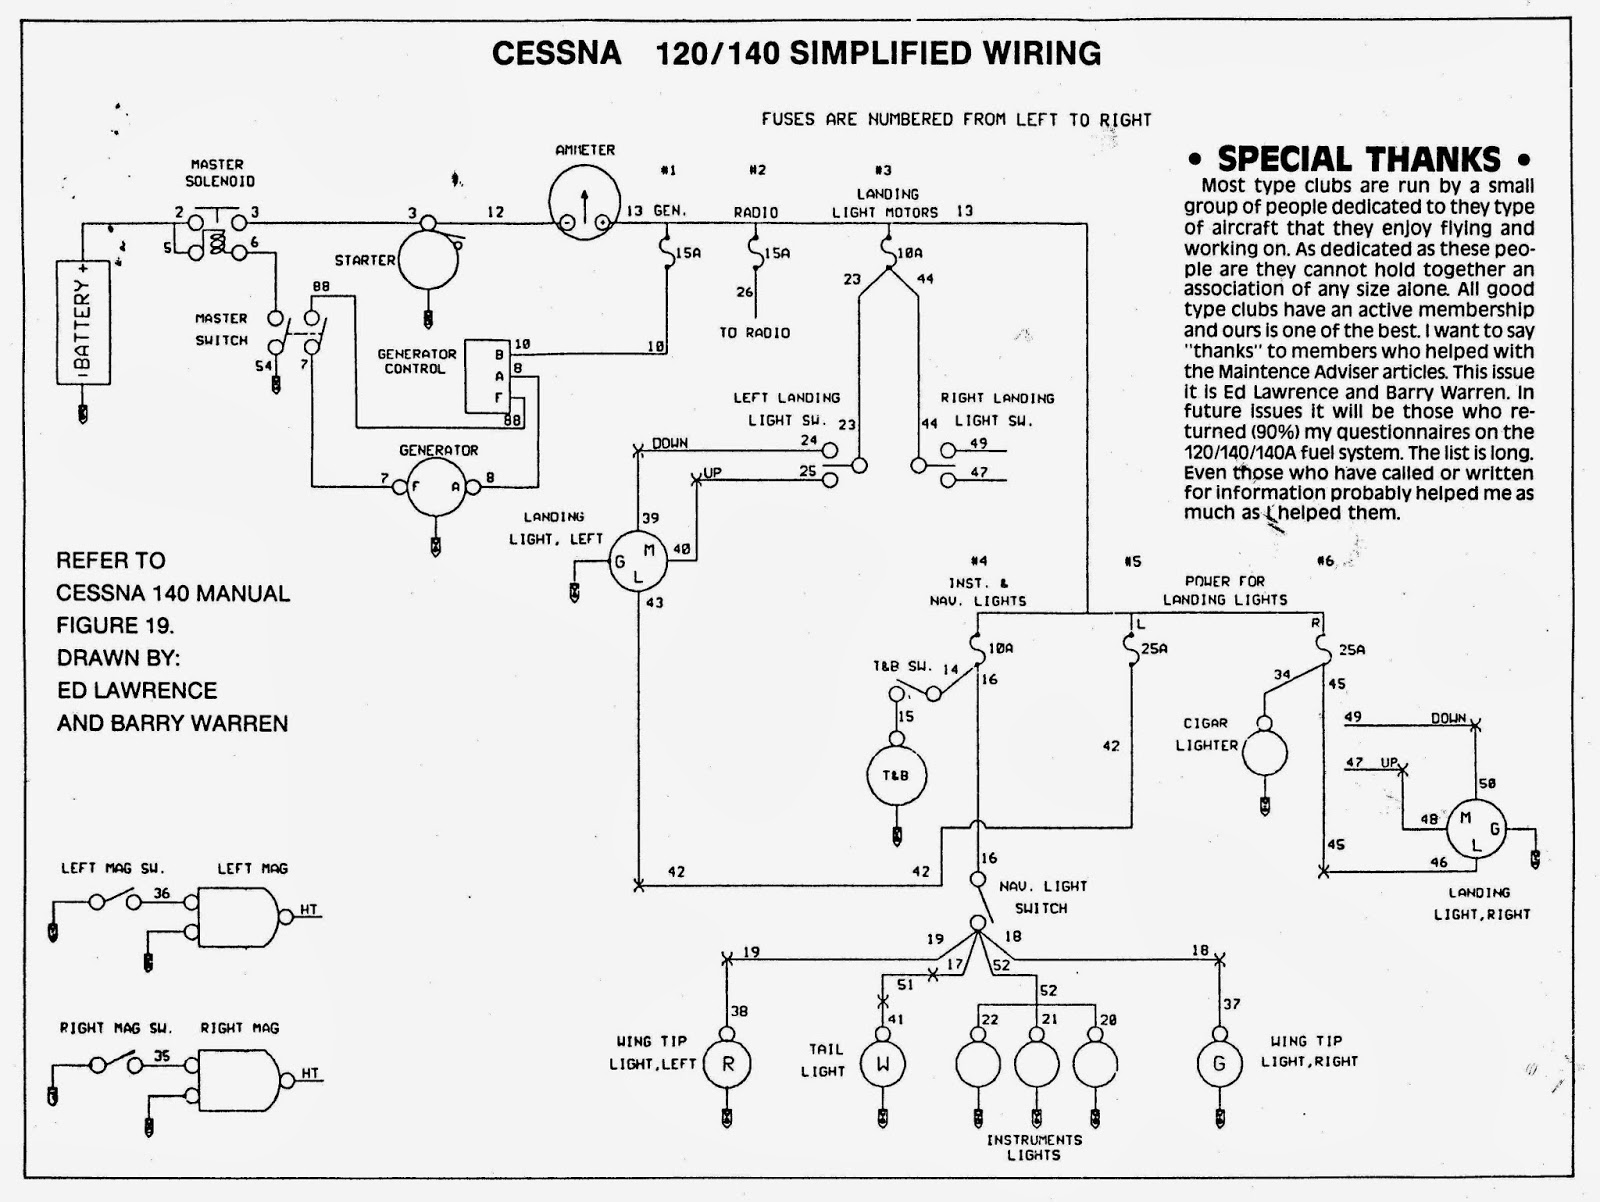 Stunning cessna 150 wiring diagram pictures inspiration wonderful cessna 150 wiring diagram pictures inspiration cheapraybanclubmaster Image collections